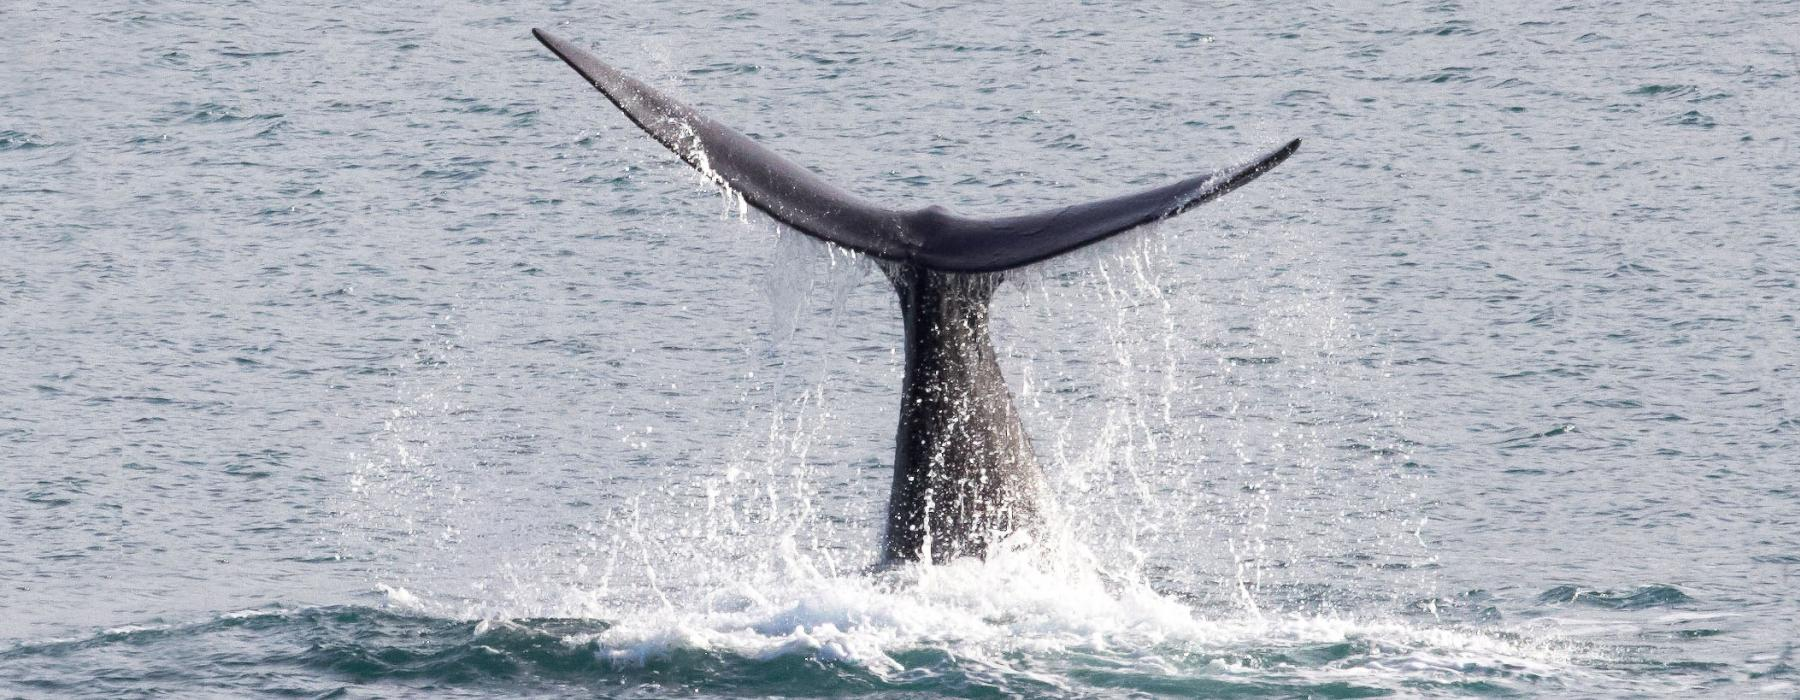 The tail of a whale as it dives into the ocean